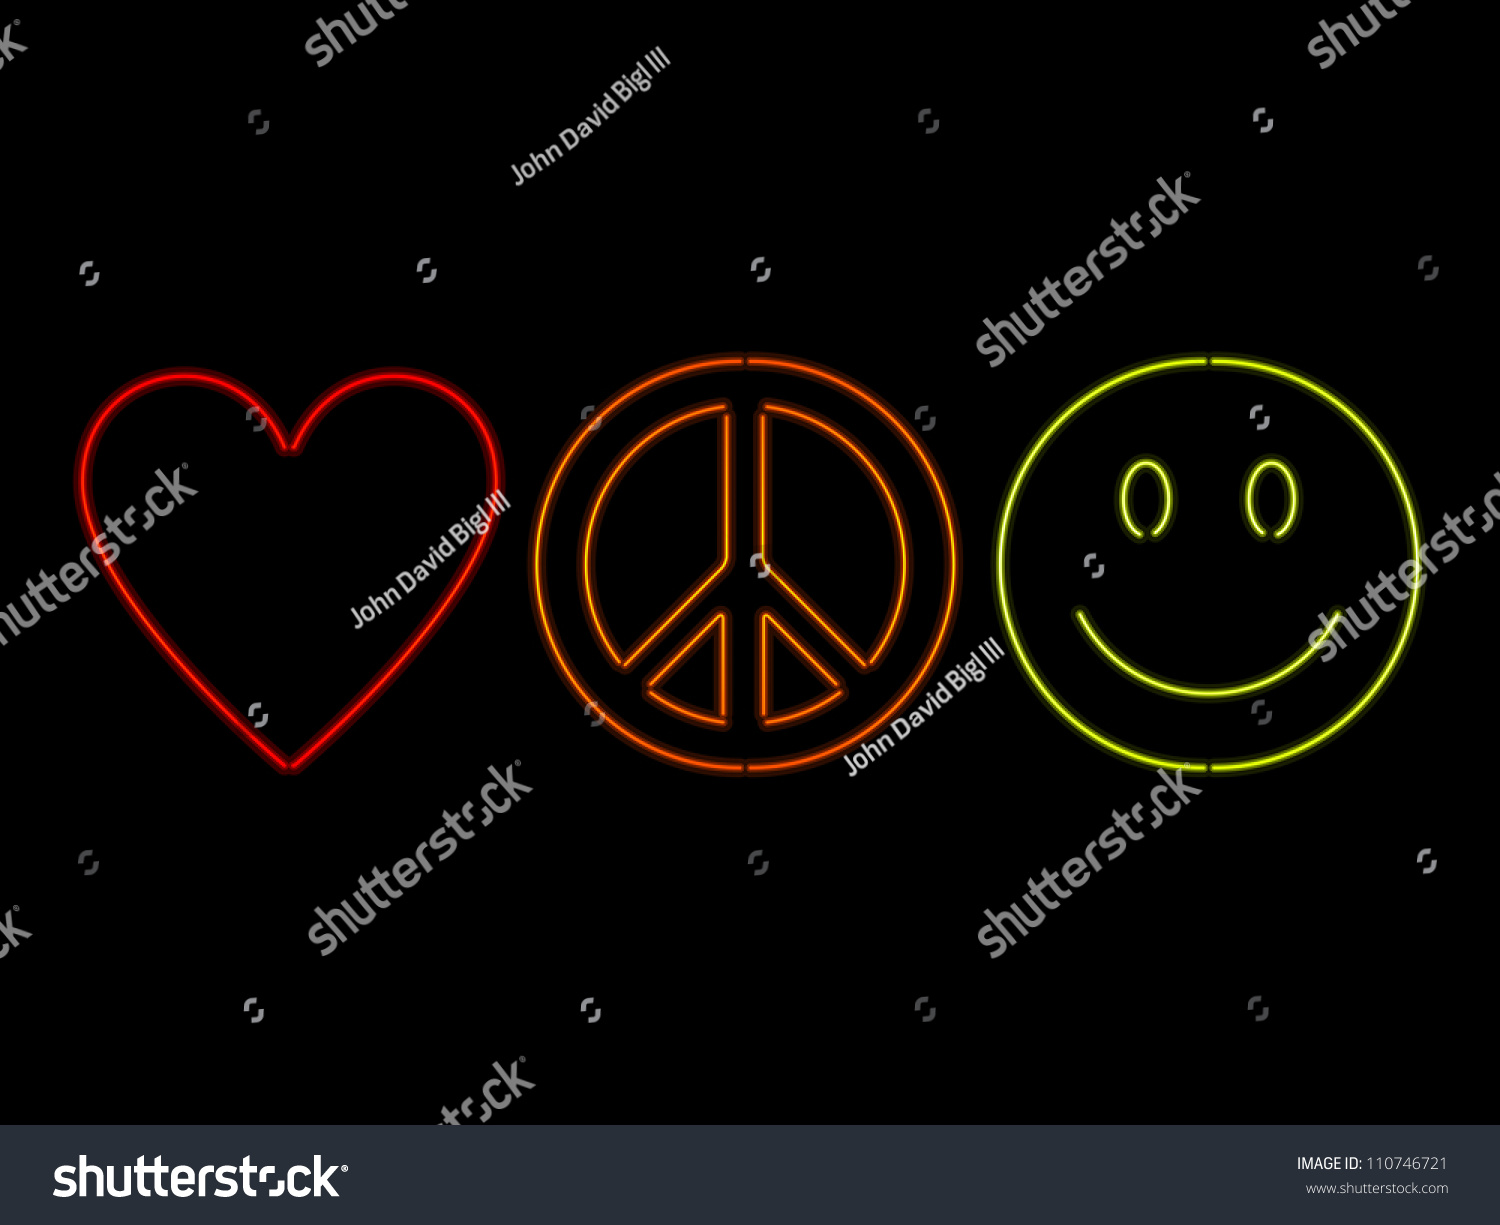 Love Peace Happiness Symbols Rendered Neon Stock Photo Photo